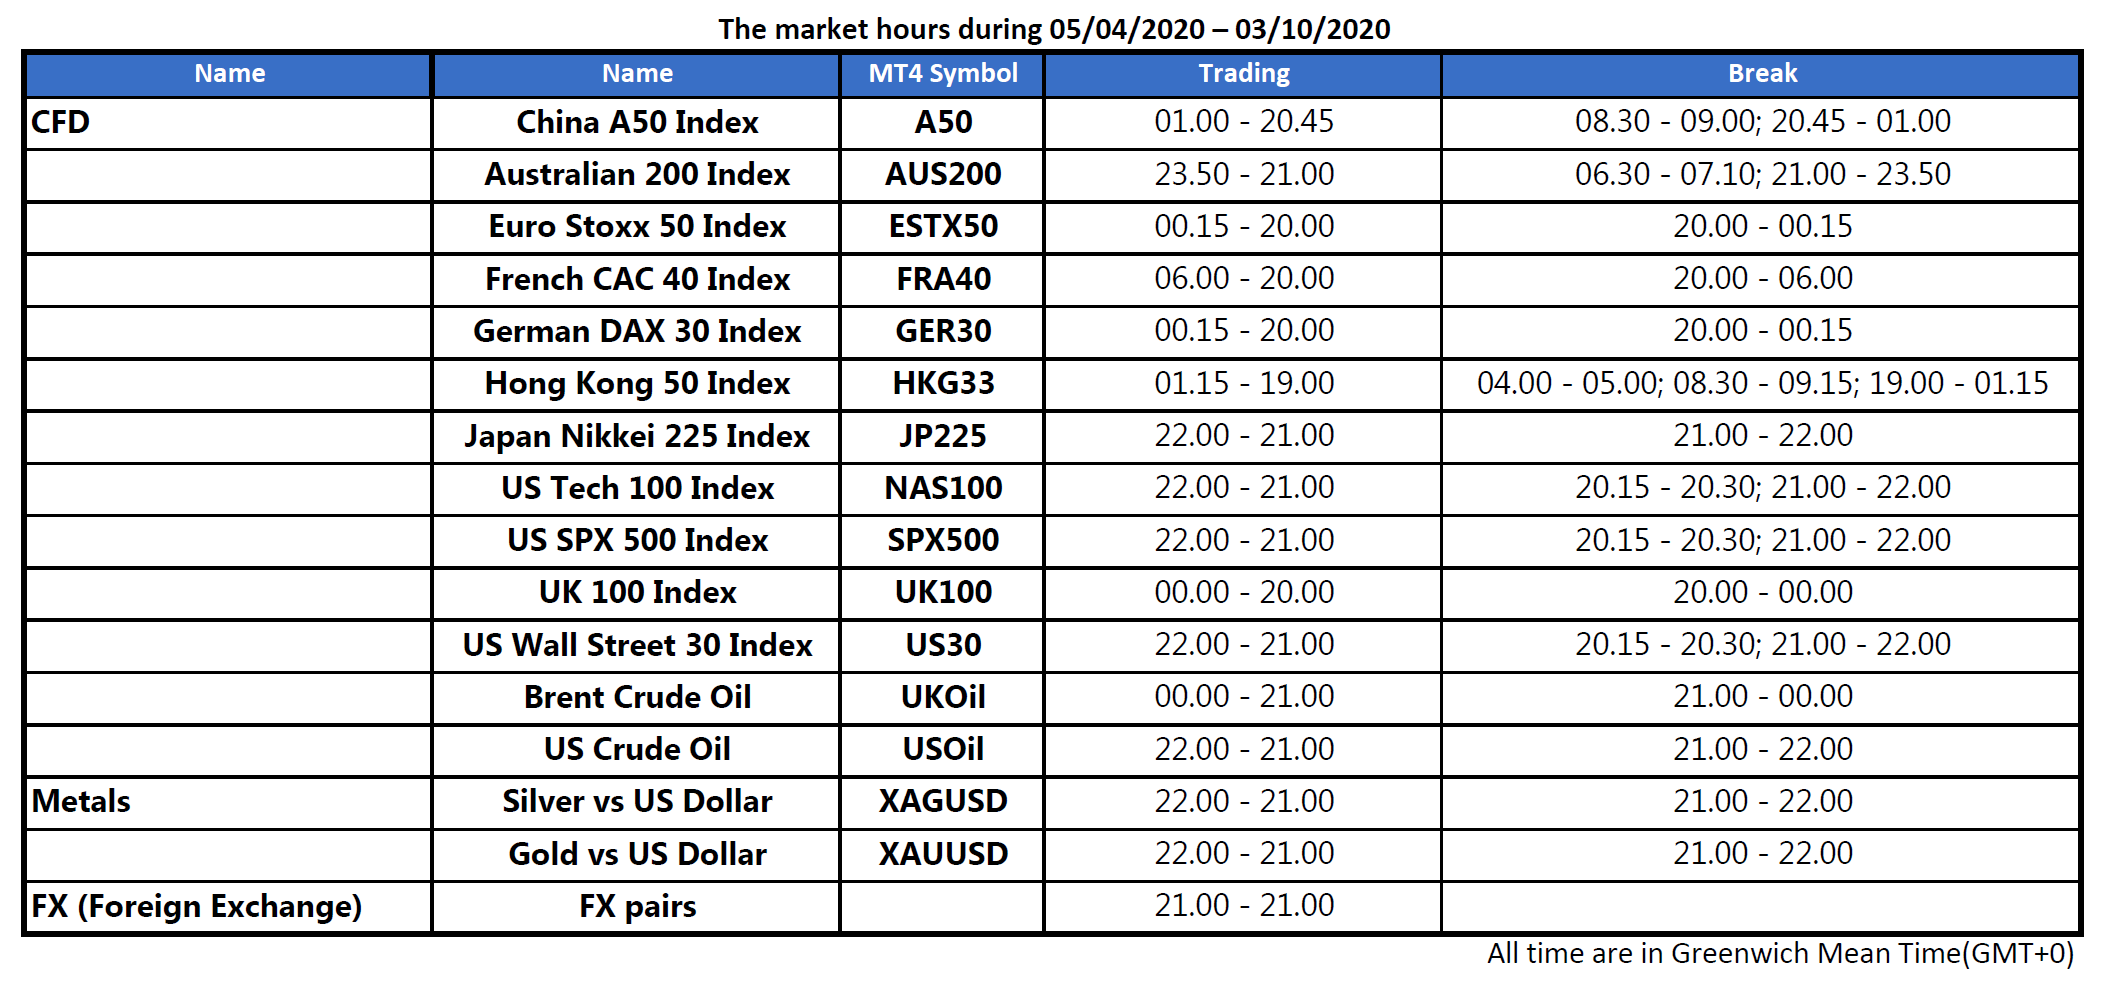 Trading hours 05-04-2020_03-10-2020